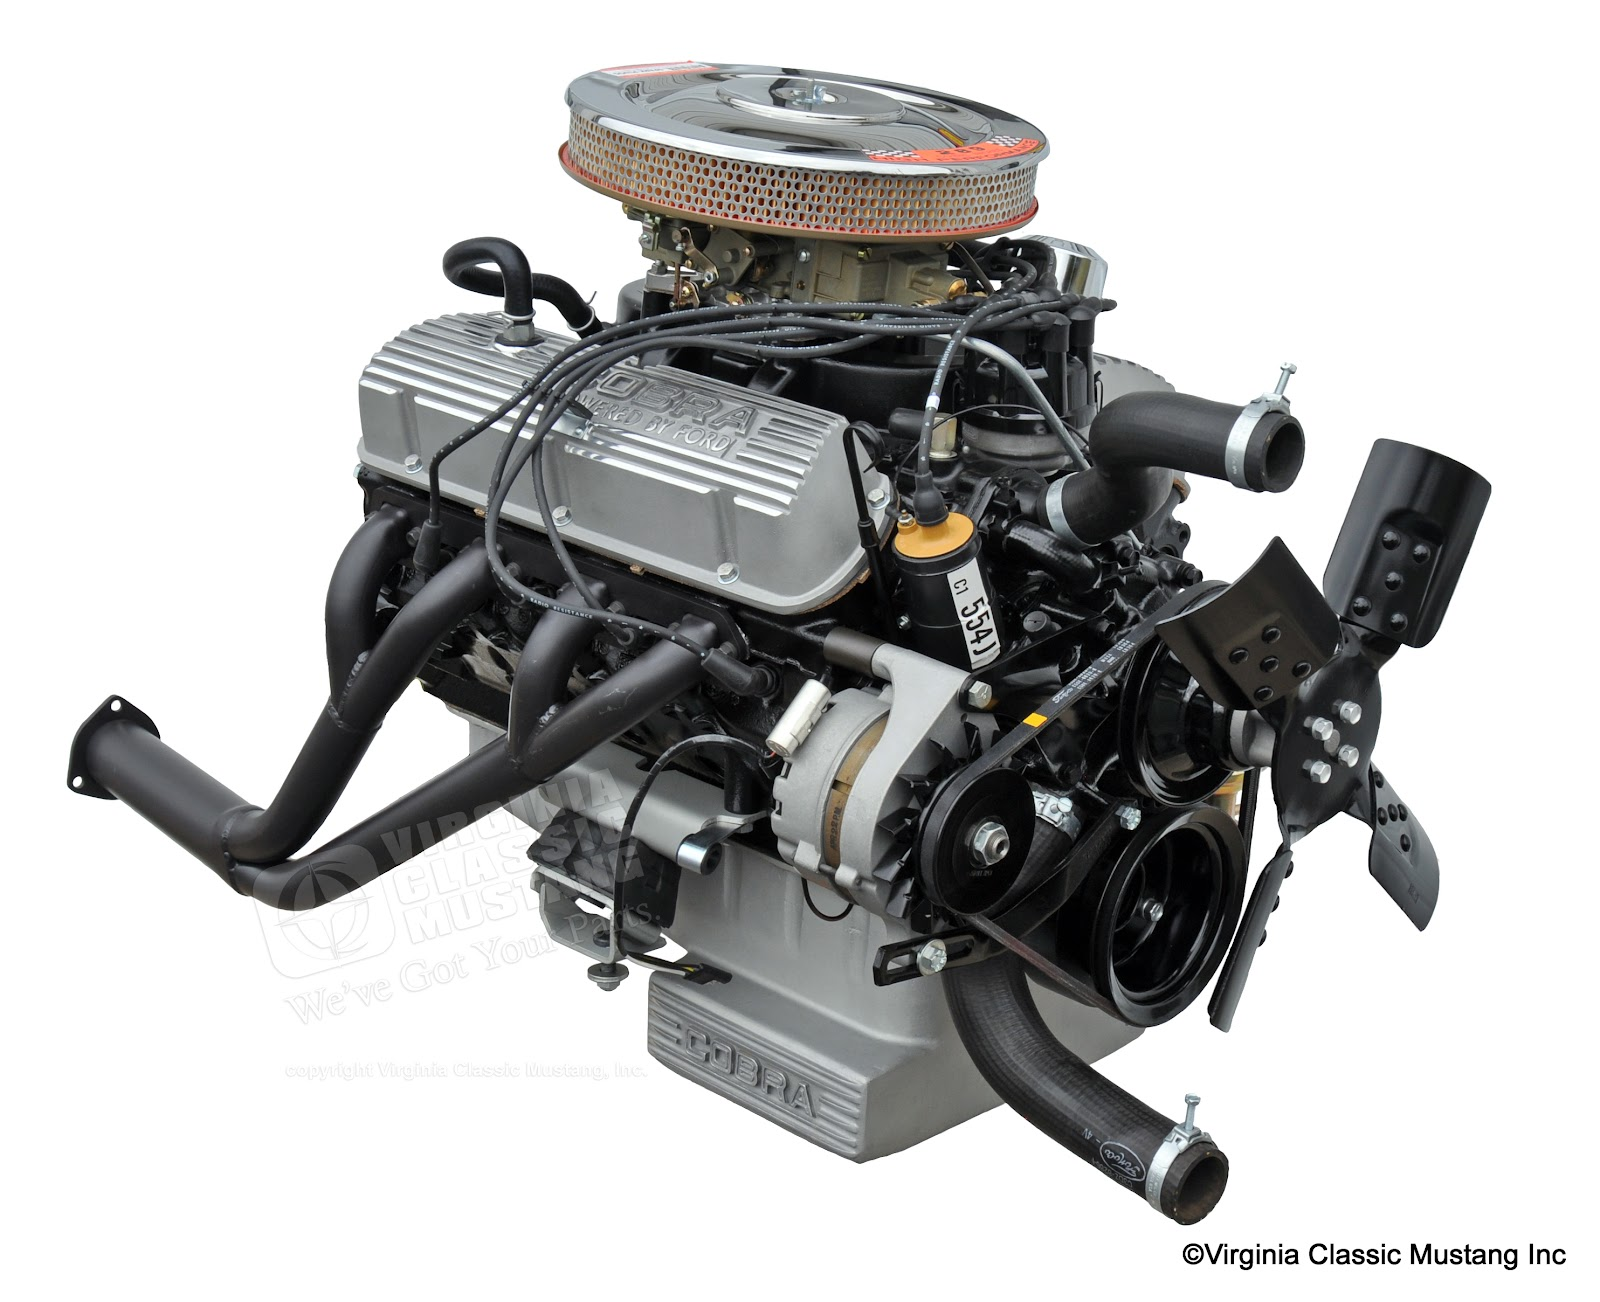 Virginia Classic Mustang Blog Just The Details1966 Shelby Gt350 Ford 289 Engine And Transmission Assembly Diagram Detailed From 1966 Sfm6s033 High Performance Virginiaclassicmustangcom